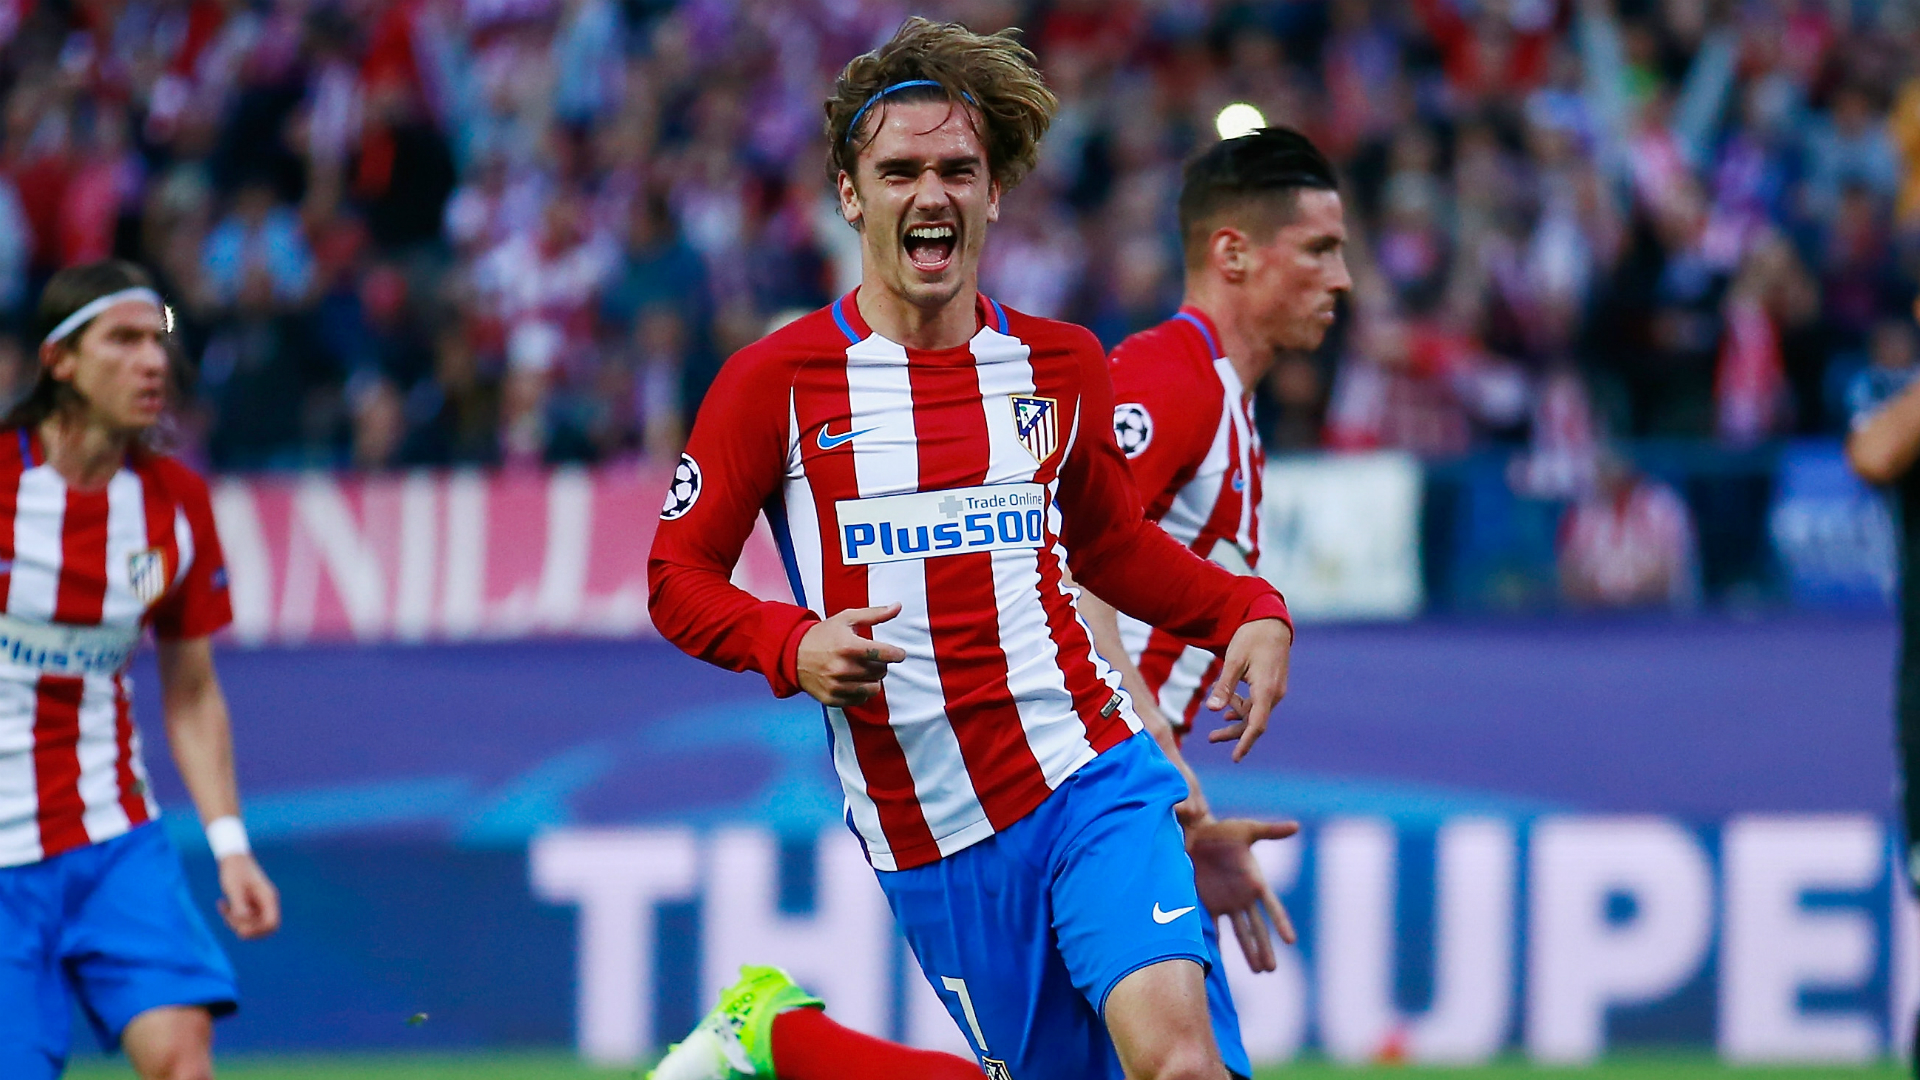 Antoine Griezmann confirms he's staying at Atletico Madrid after transfer ban upheld